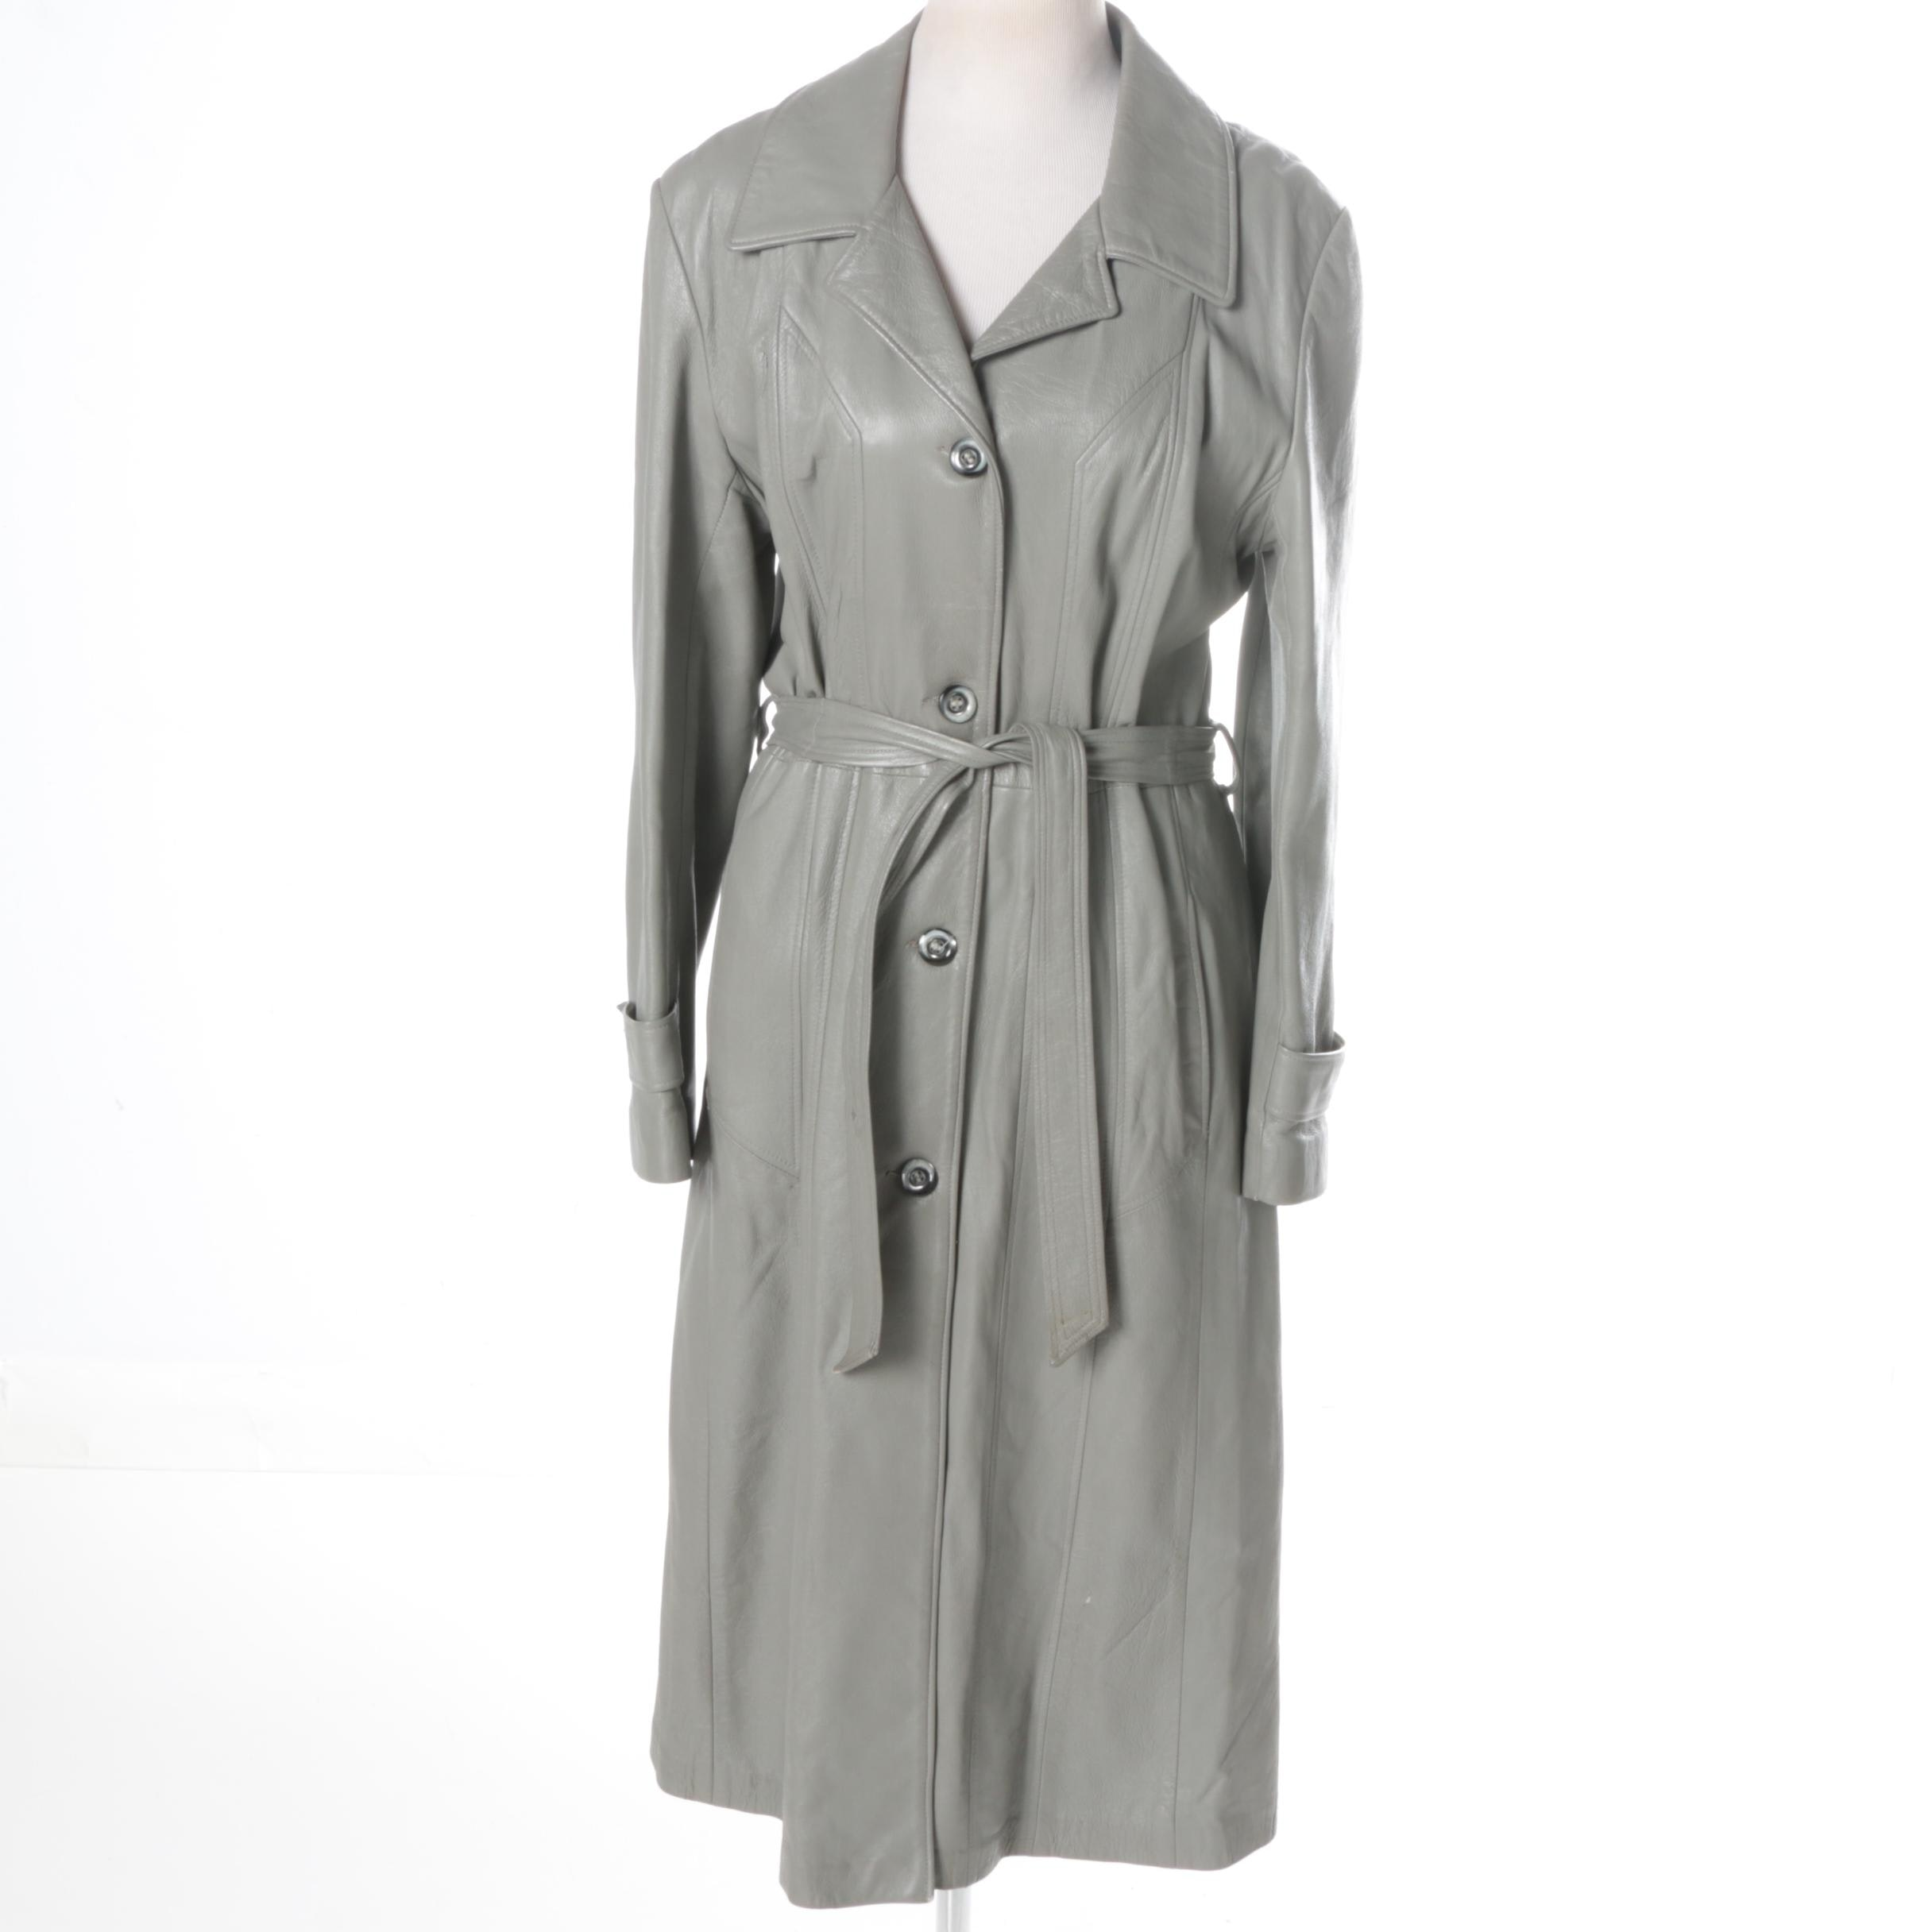 Women's Vincents Indiana Grey Leather Trench Coat